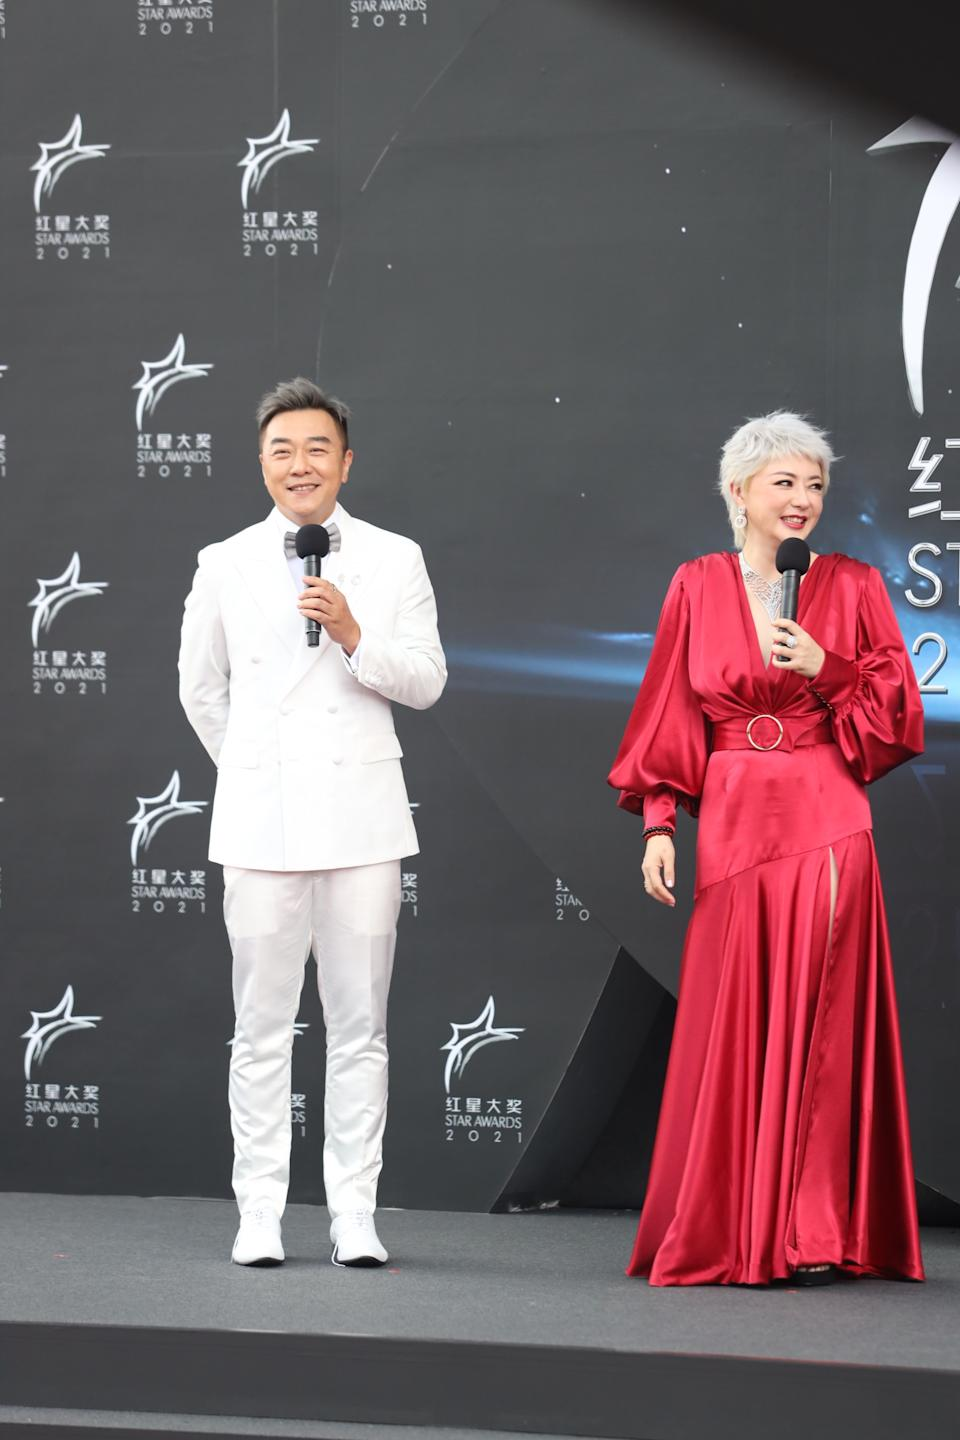 Guo Liang and Quan Yi Fong at Star Awards held at Changi Airport on 18 April 2021. (Photo: Mediacorp)